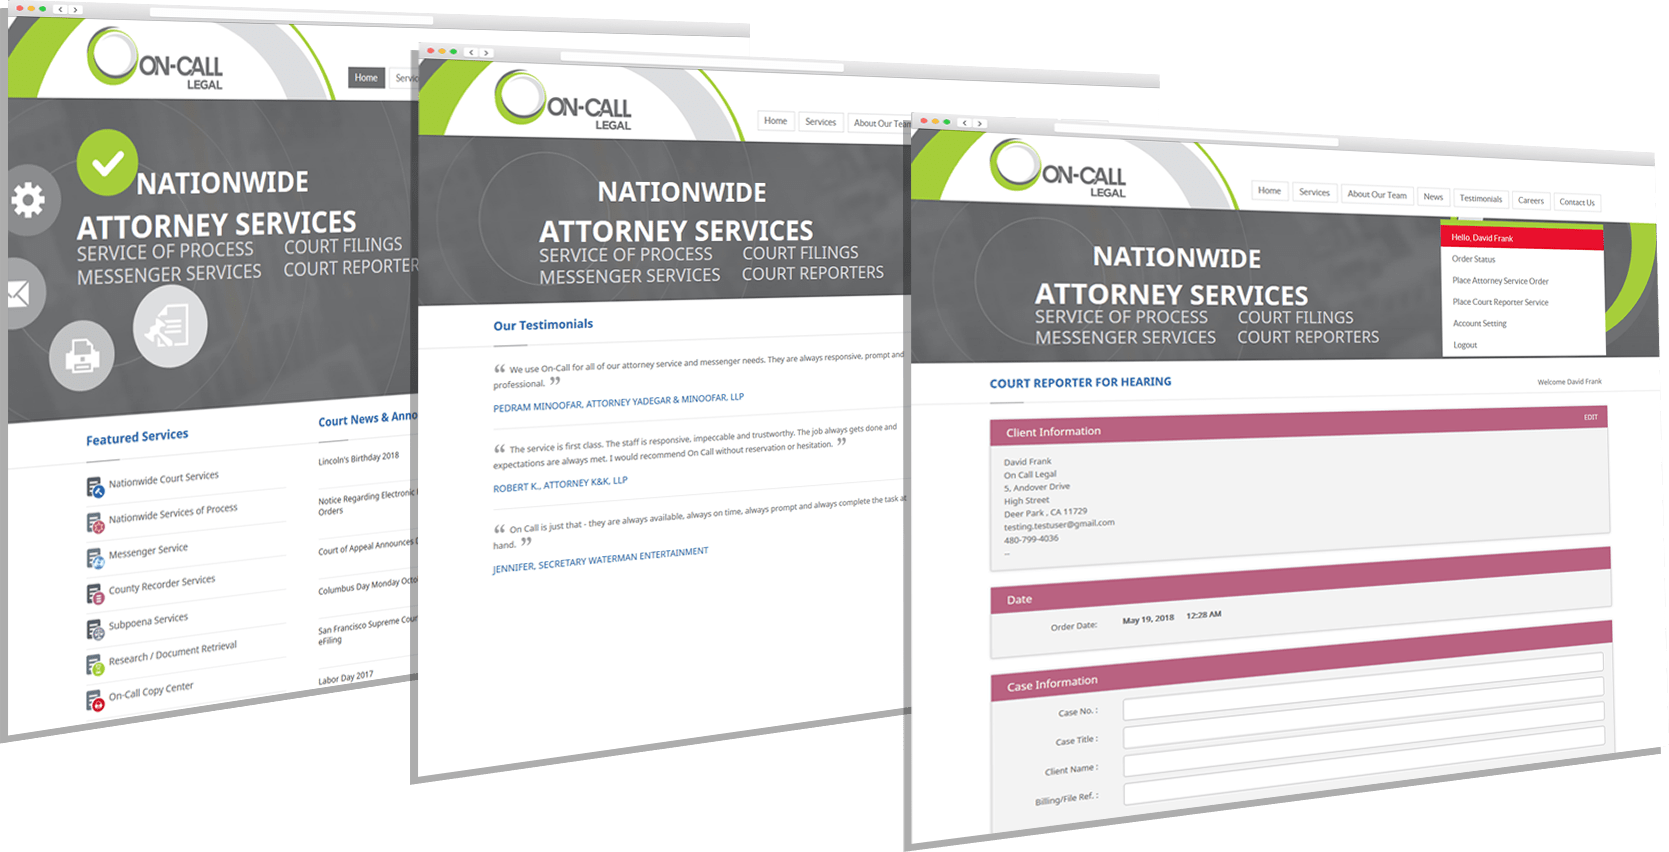 oncall_legal-screen3